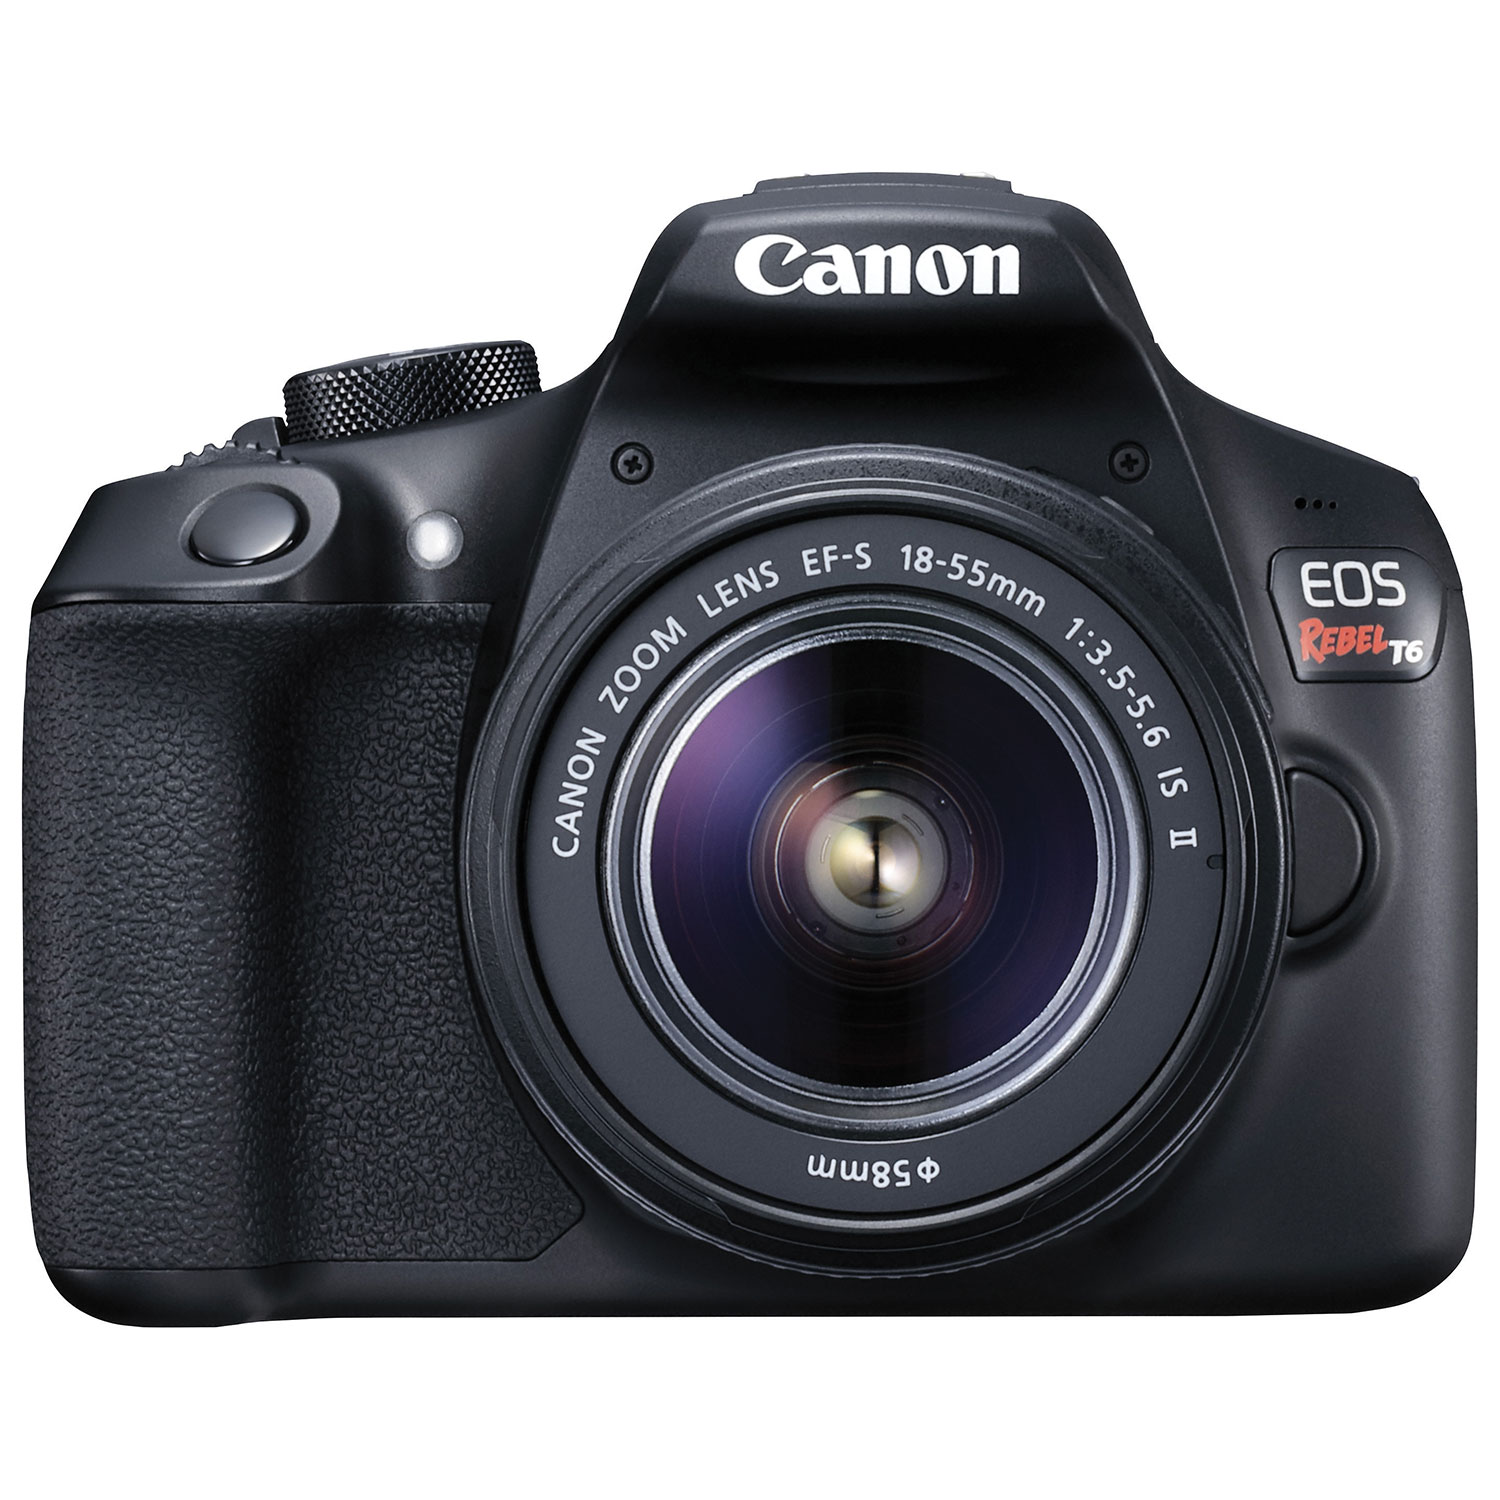 Camera How Much Are Dslr Cameras best digital slr cameras canon nikon dslr buy canada eos rebel t6 camera with ef s 18 55mm f3 5